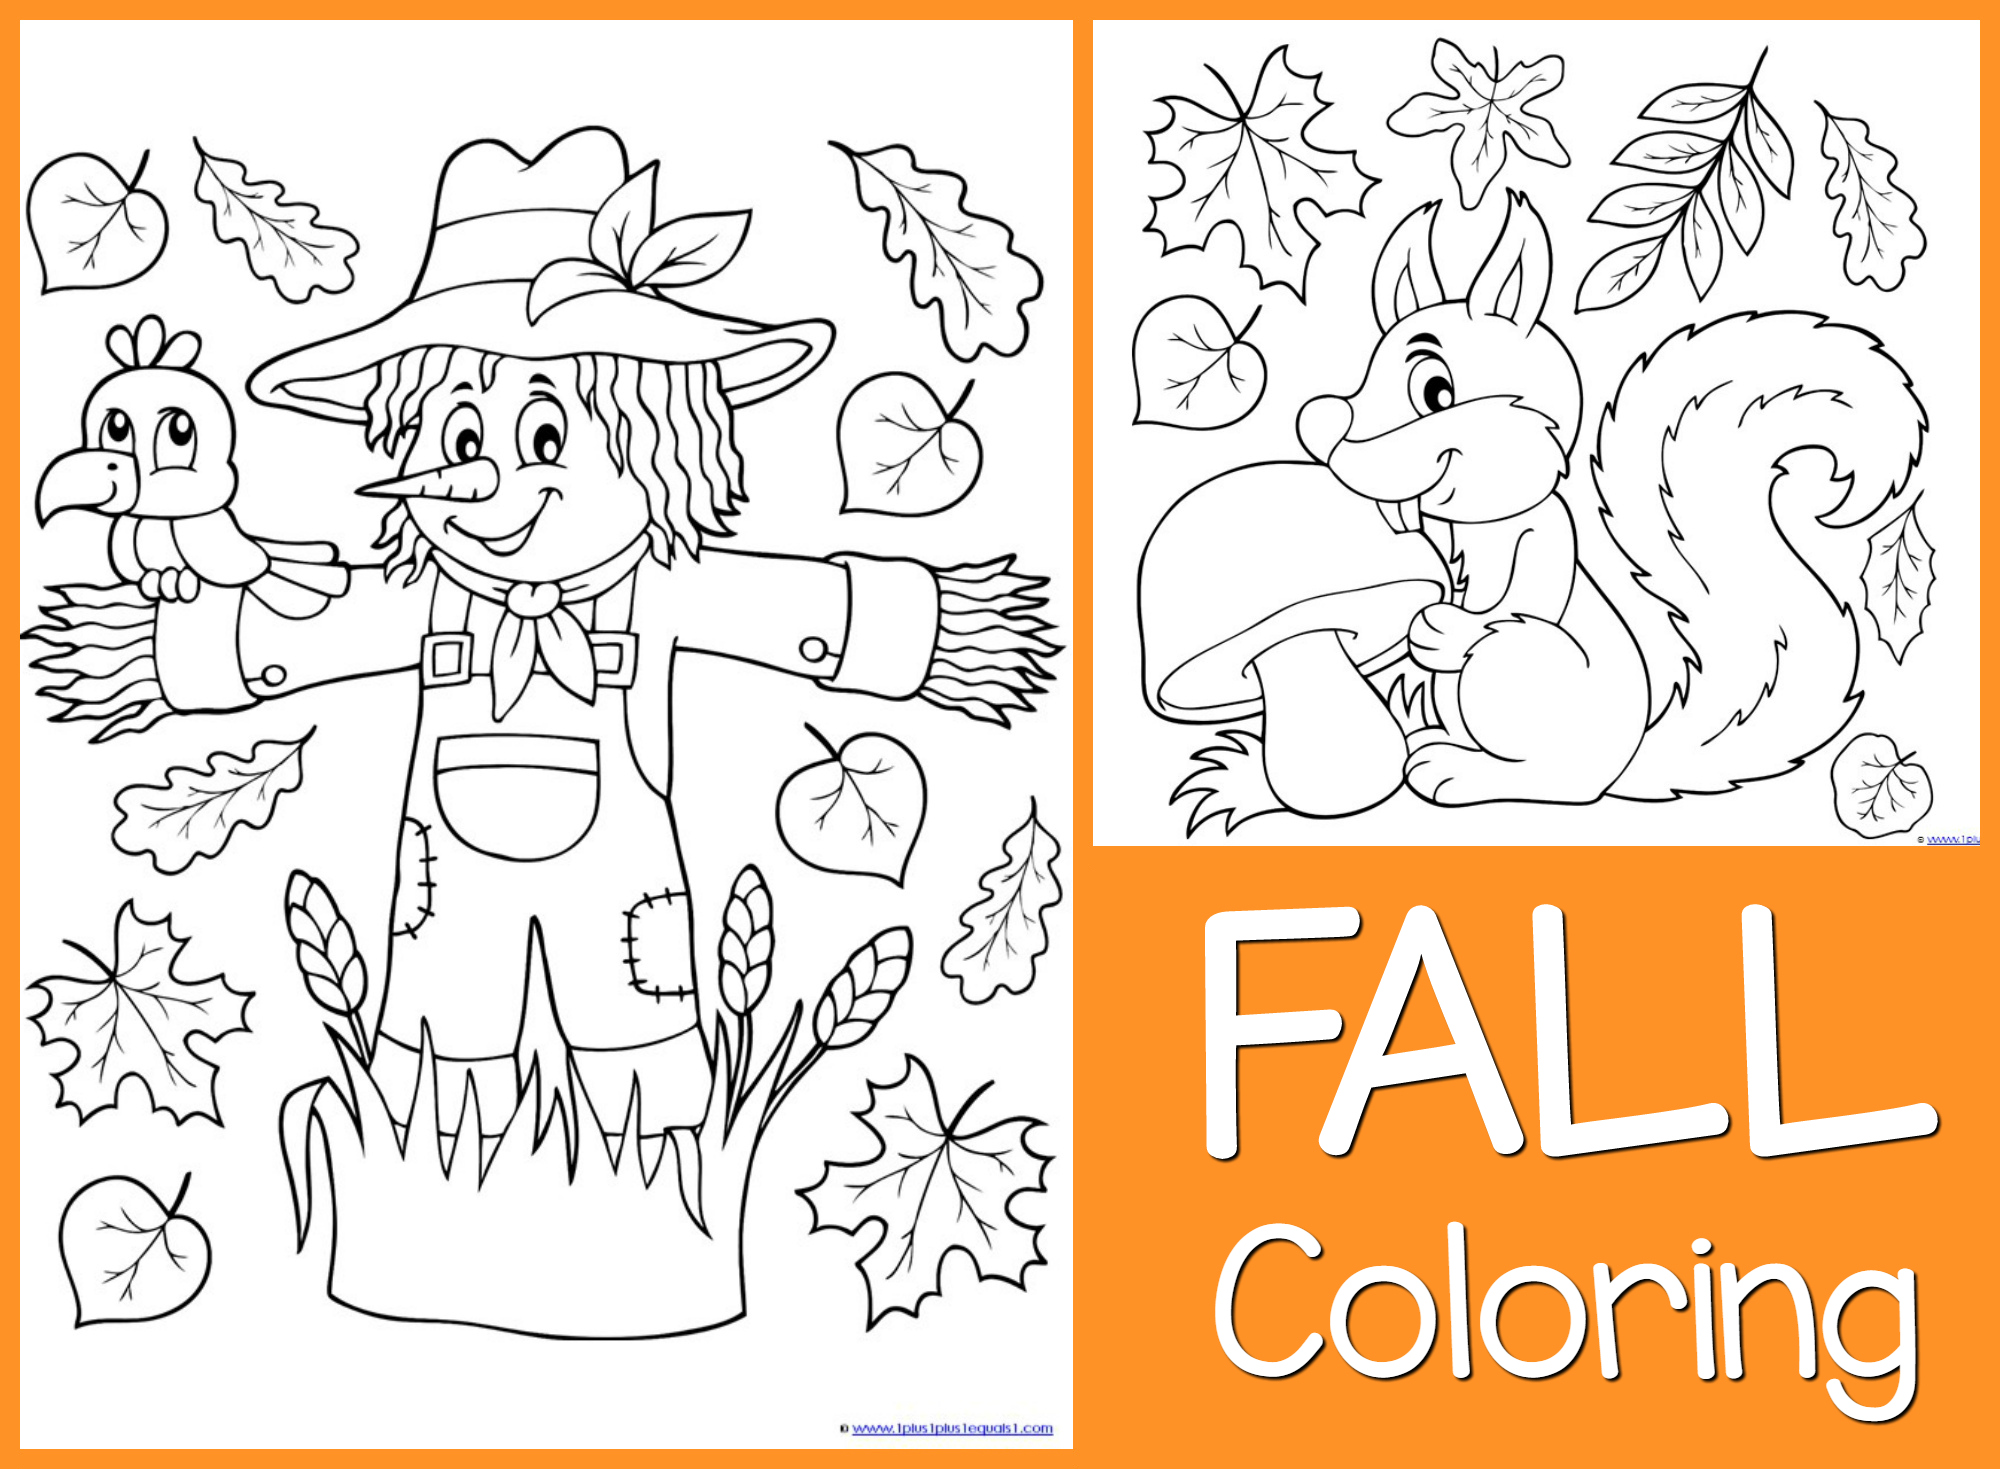 Just color free coloring printables for Printable coloring pages for kids fall